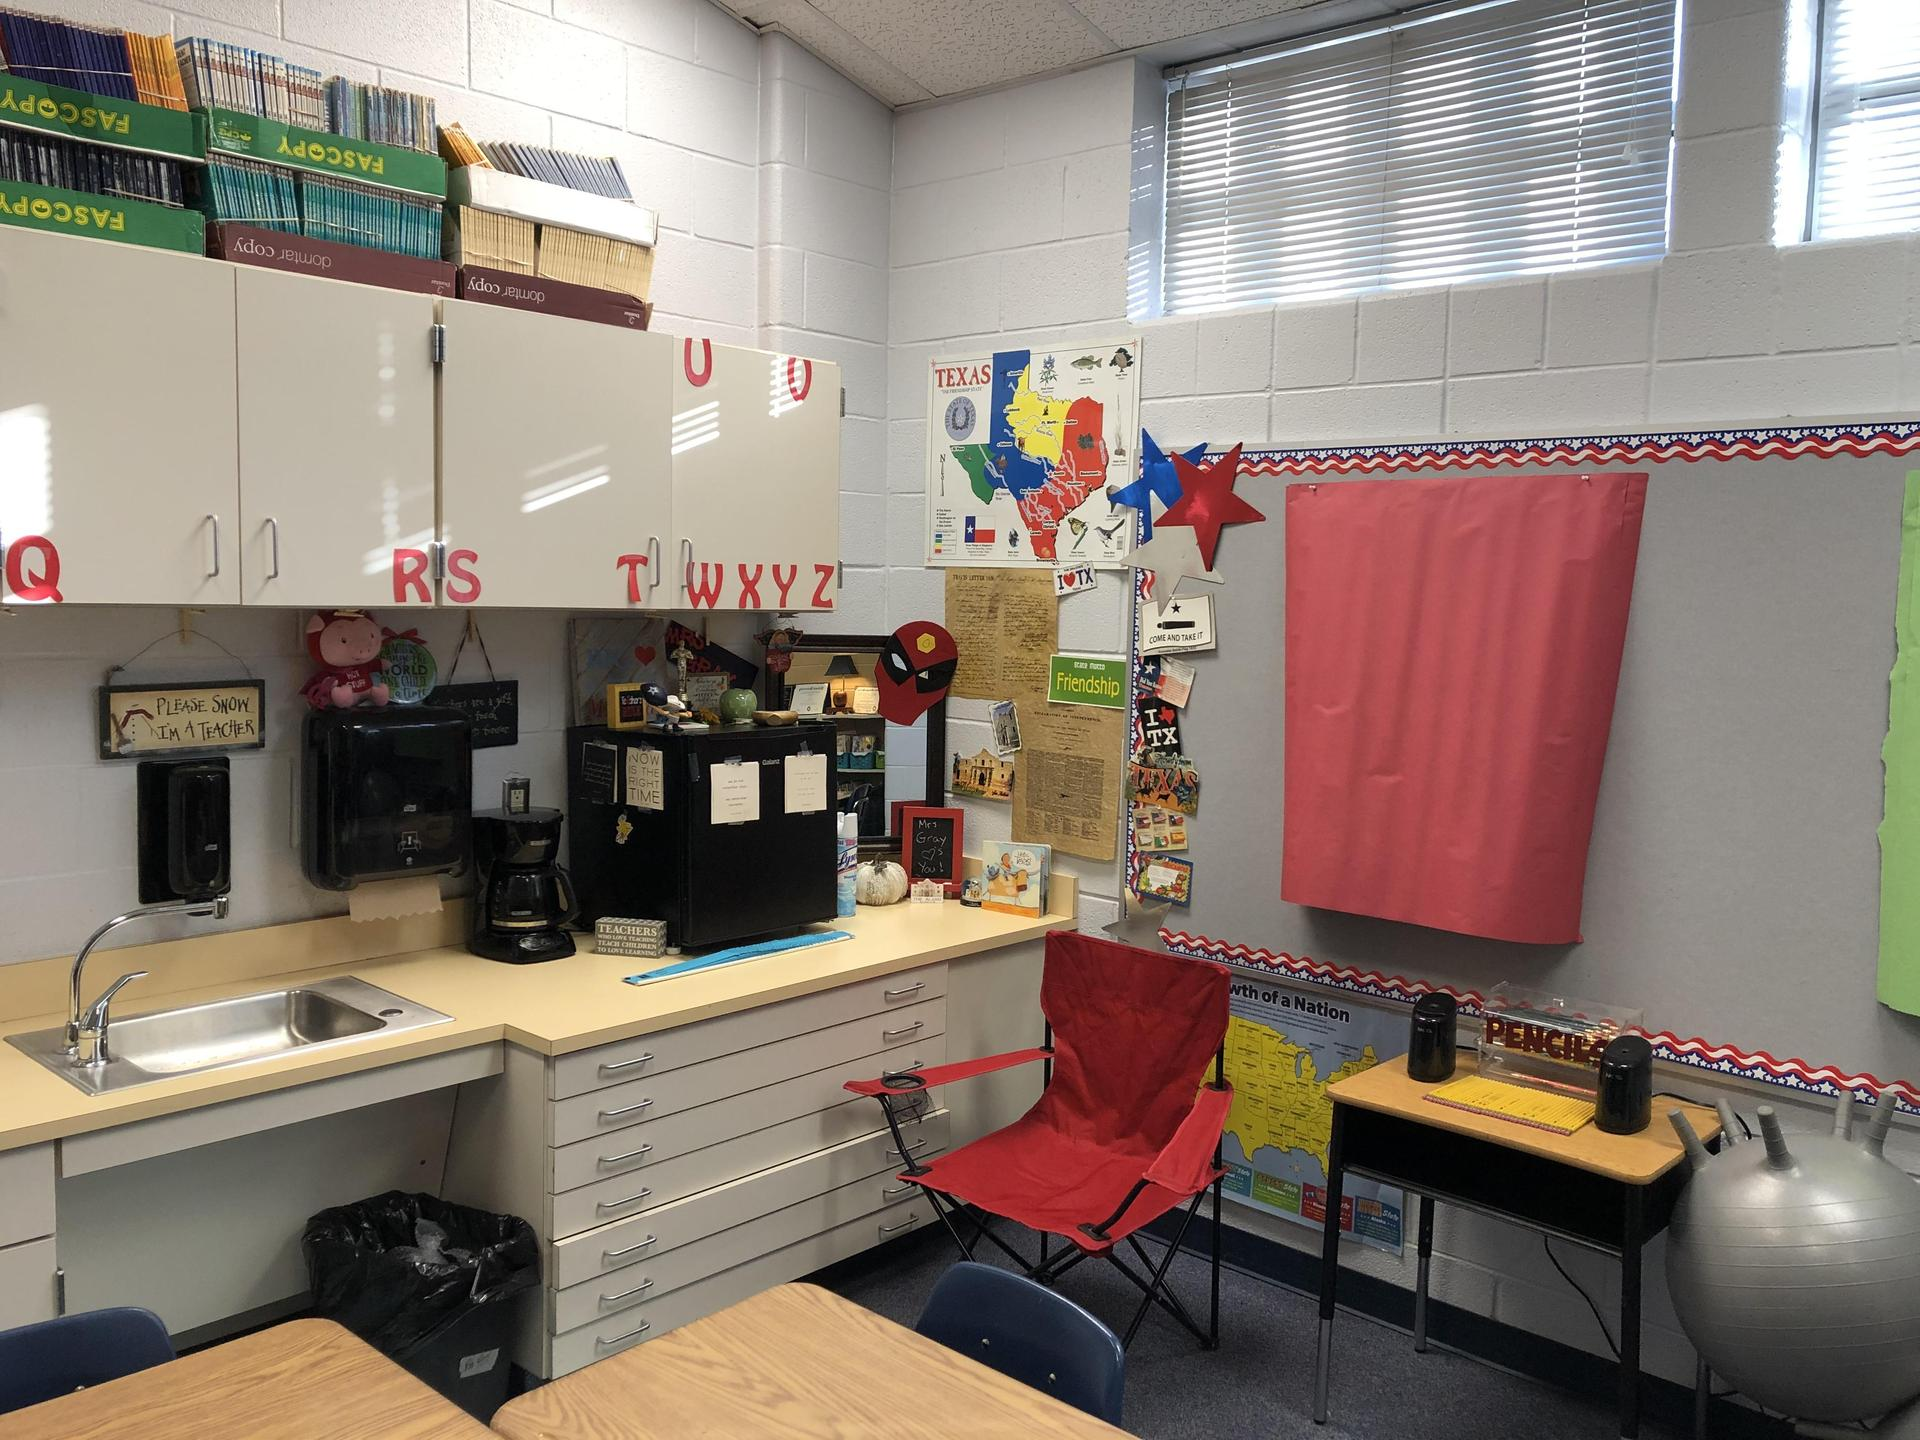 We have lots of room for learning and fun!